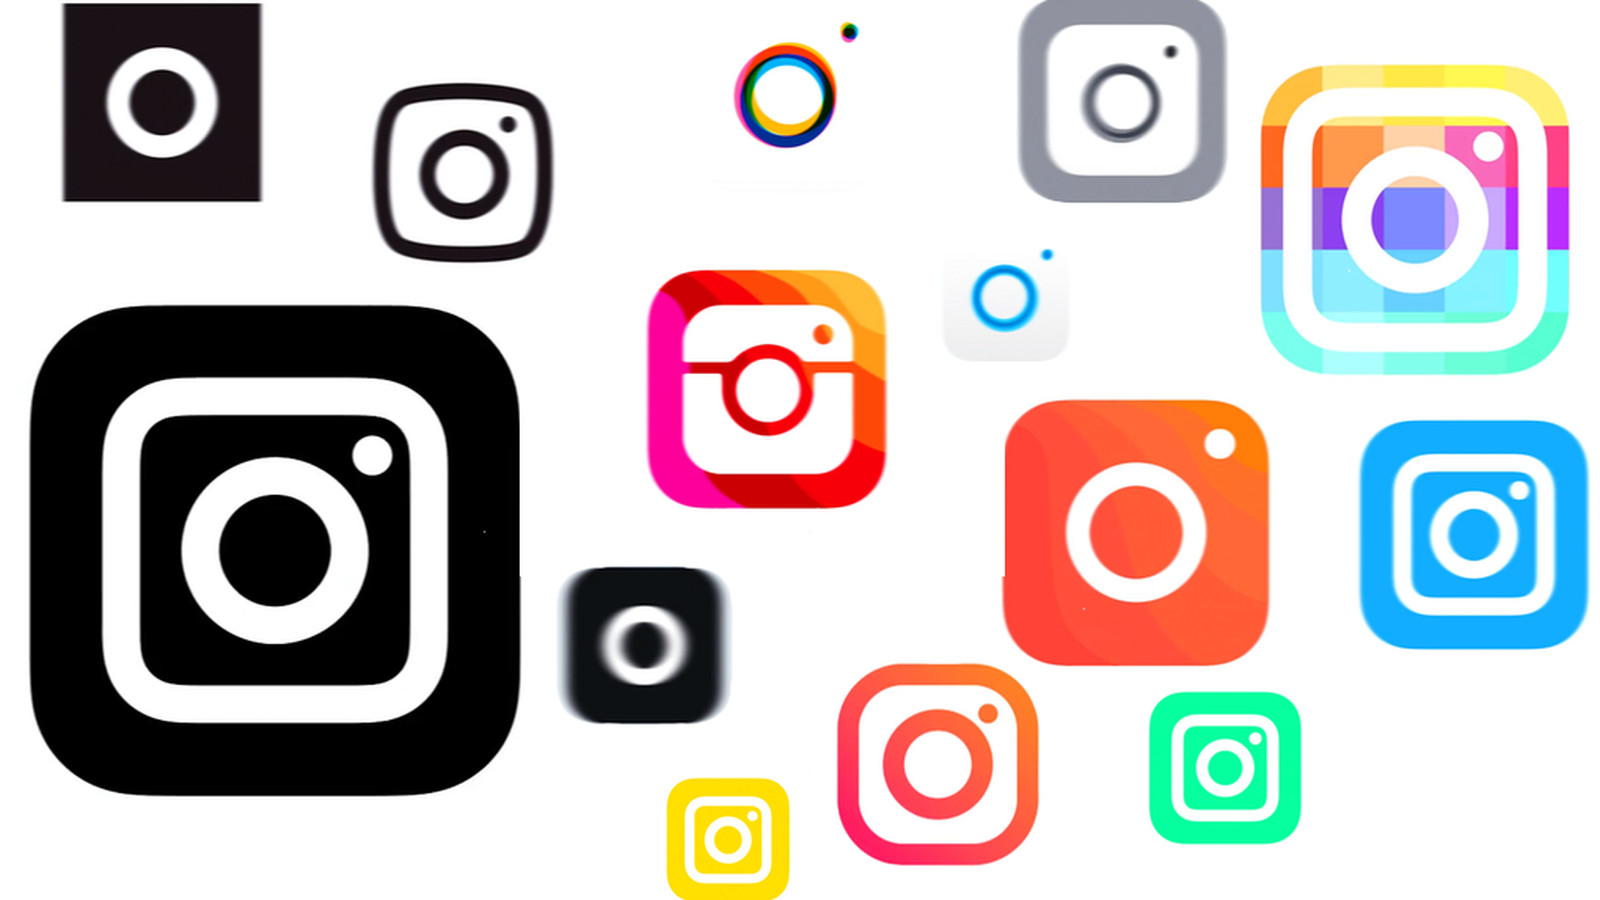 Instagram Restores Some Order to Your Chaotic Feed